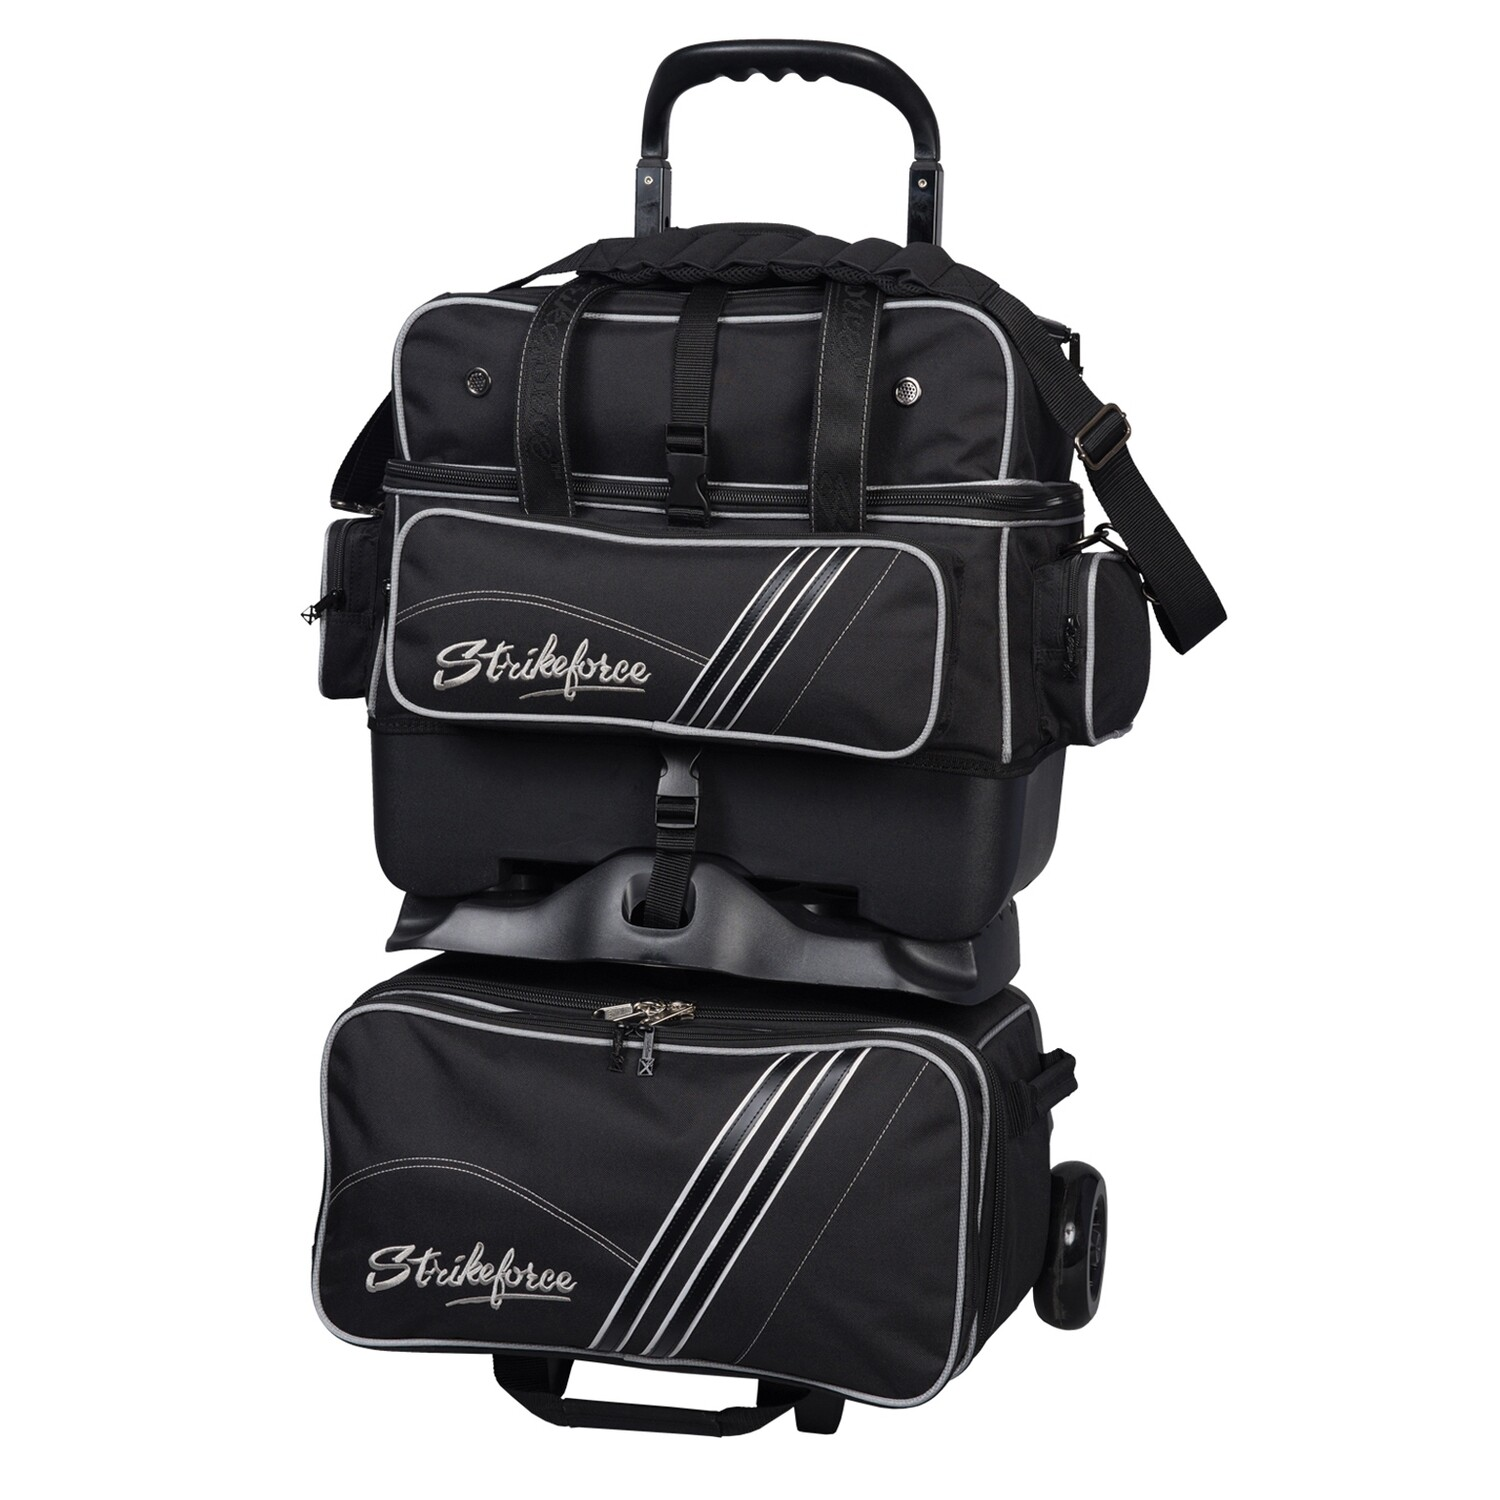 KR Strikeforce LR4 Sport 4 Ball Roller Bowling Bag